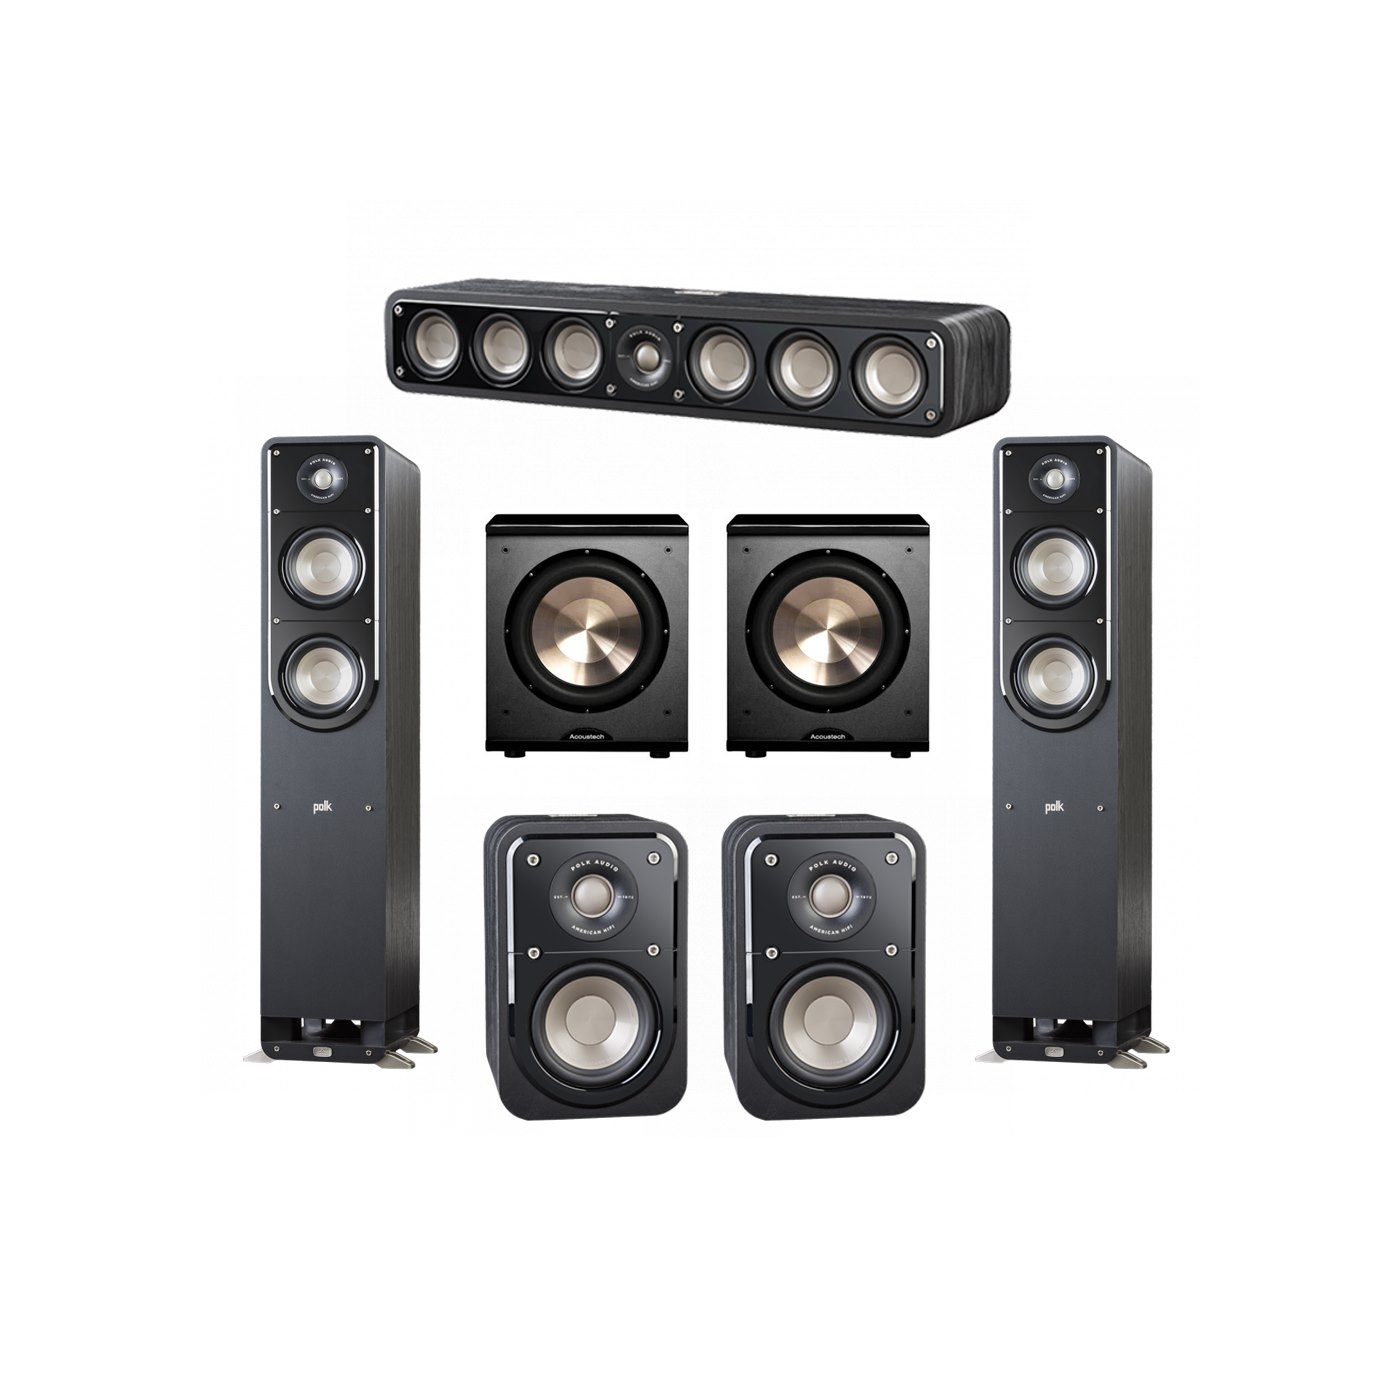 Polk Audio Signature 5.2 System with 2 S50 Tower Speaker, 1 Polk S30 Center Speaker, 2 Polk S10 Surround Speaker, 2 BIC/Acoustech Platinum Series PL-200 Subwoofer